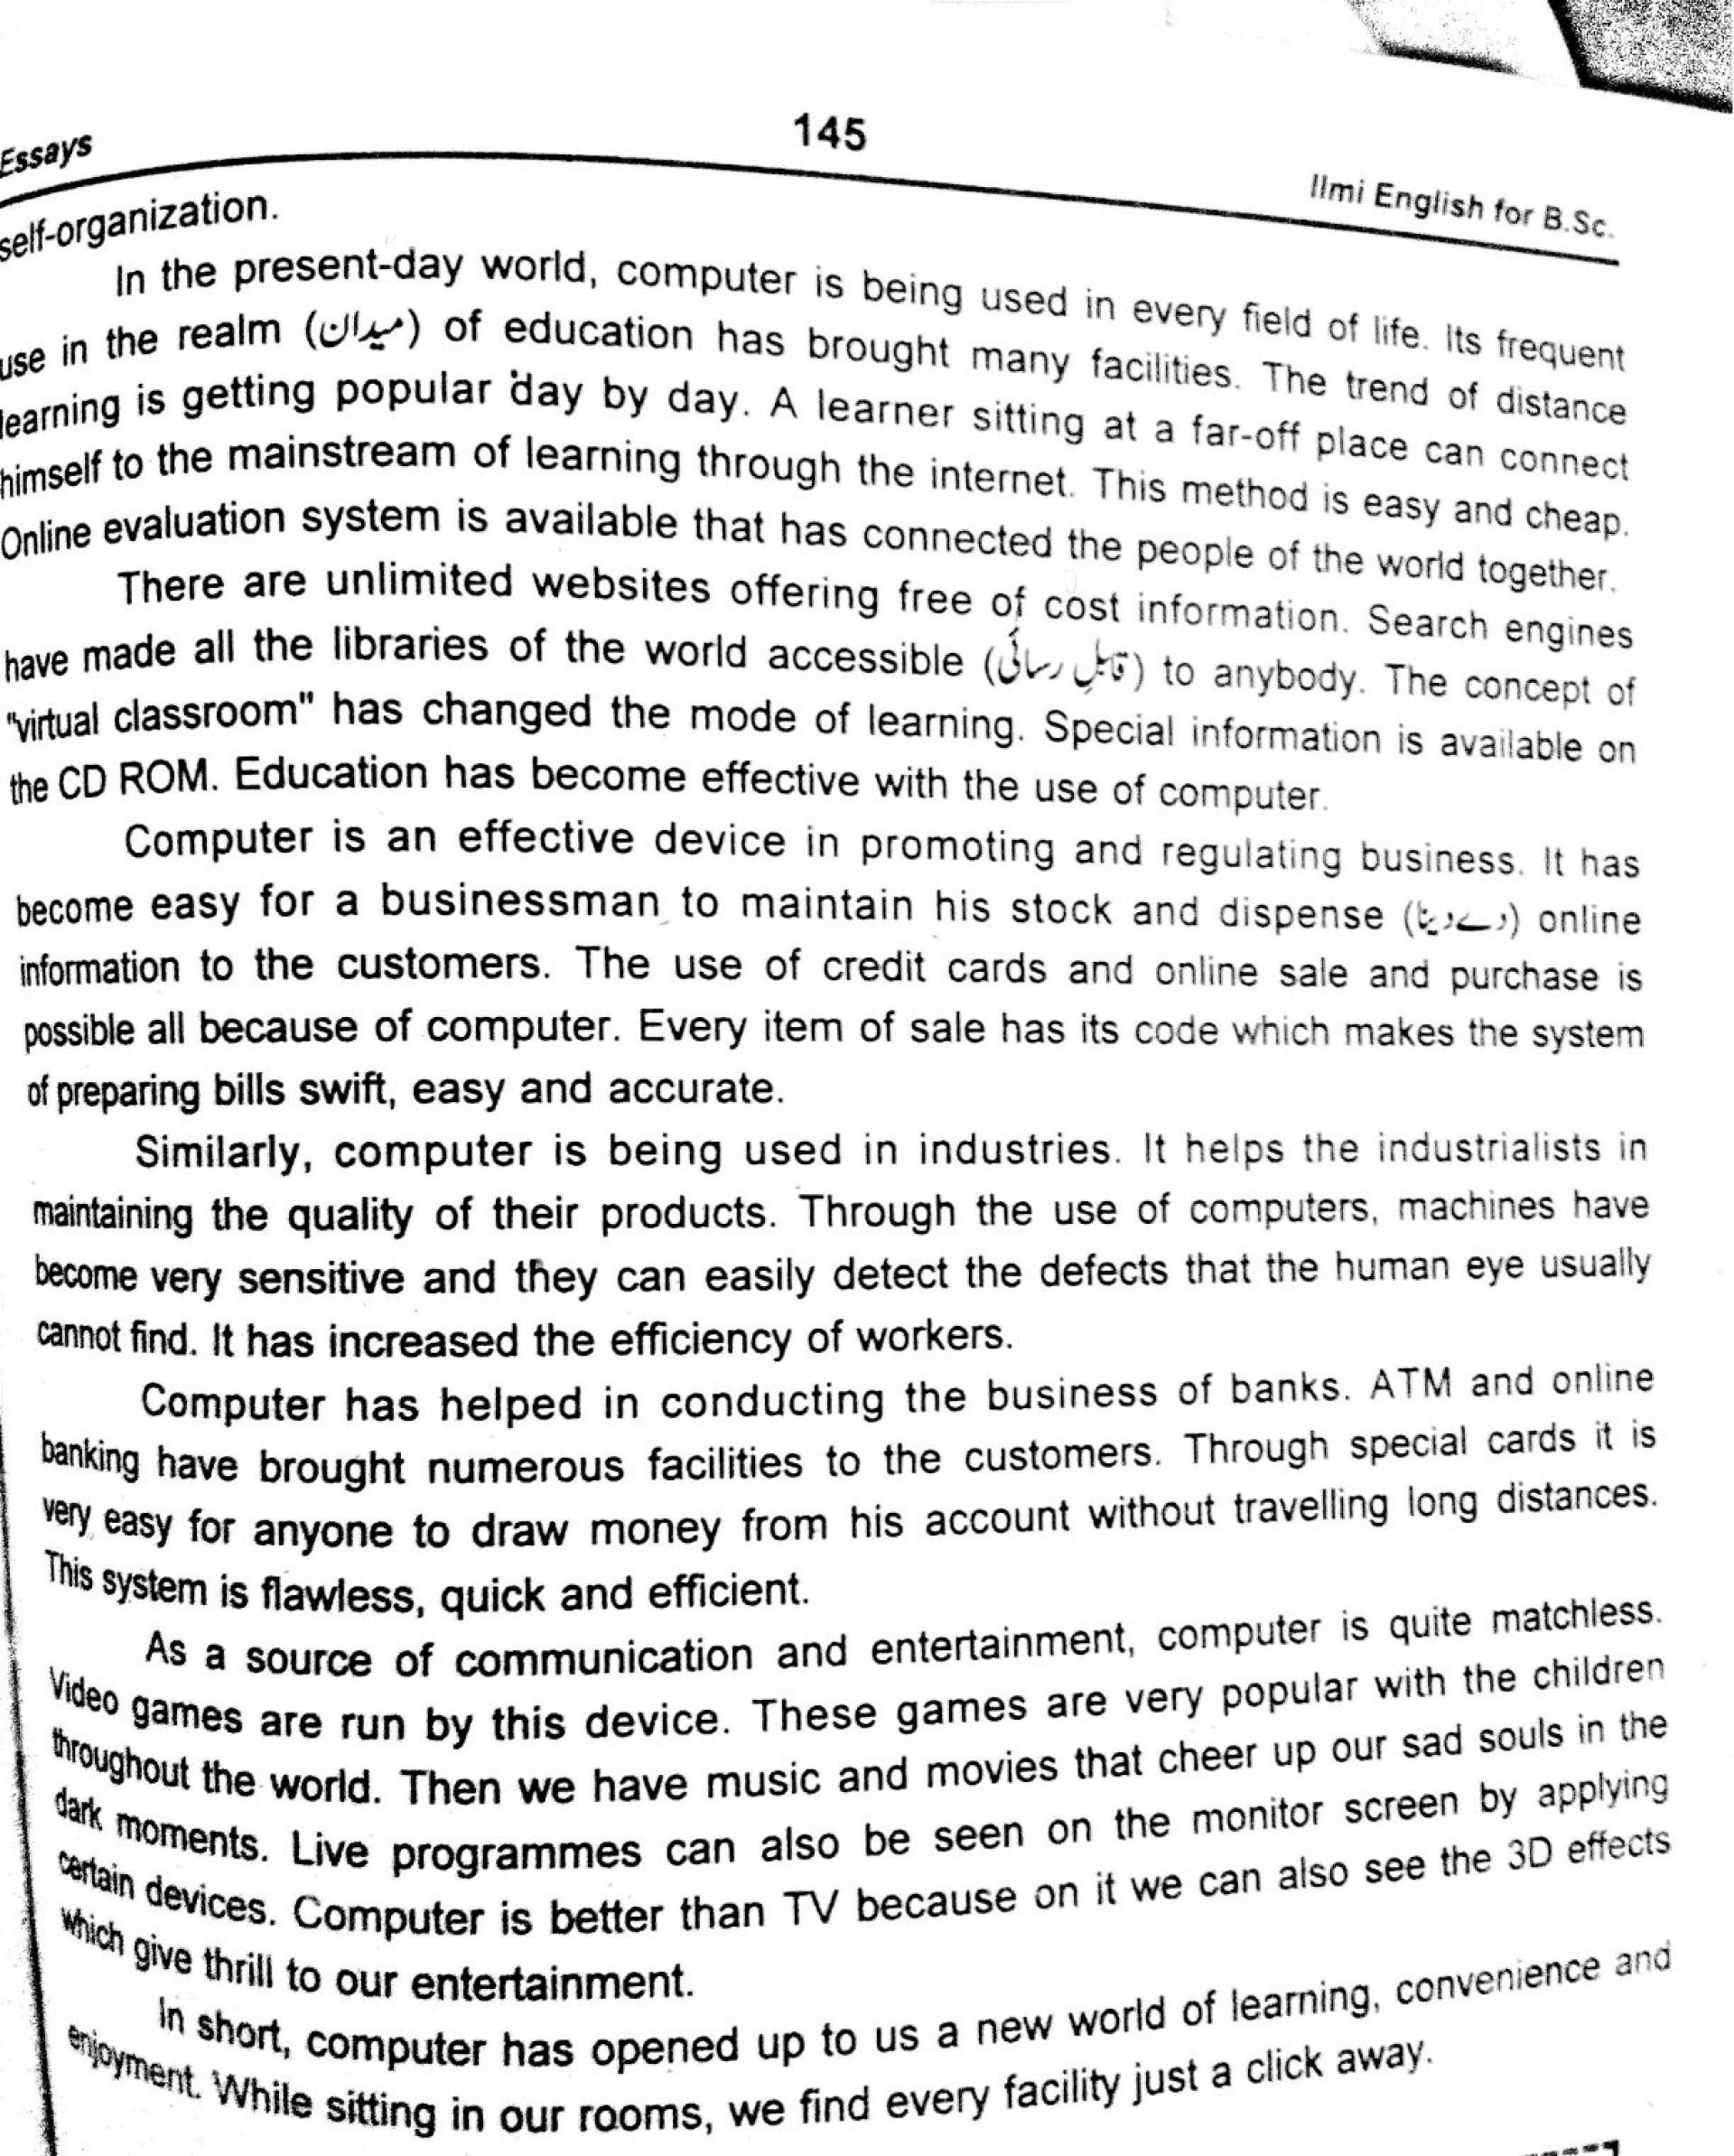 009 Computer2b252822529 Essay Of Advantages And Disadvantages Computer Archaicawful On In Urdu Language Games 1920